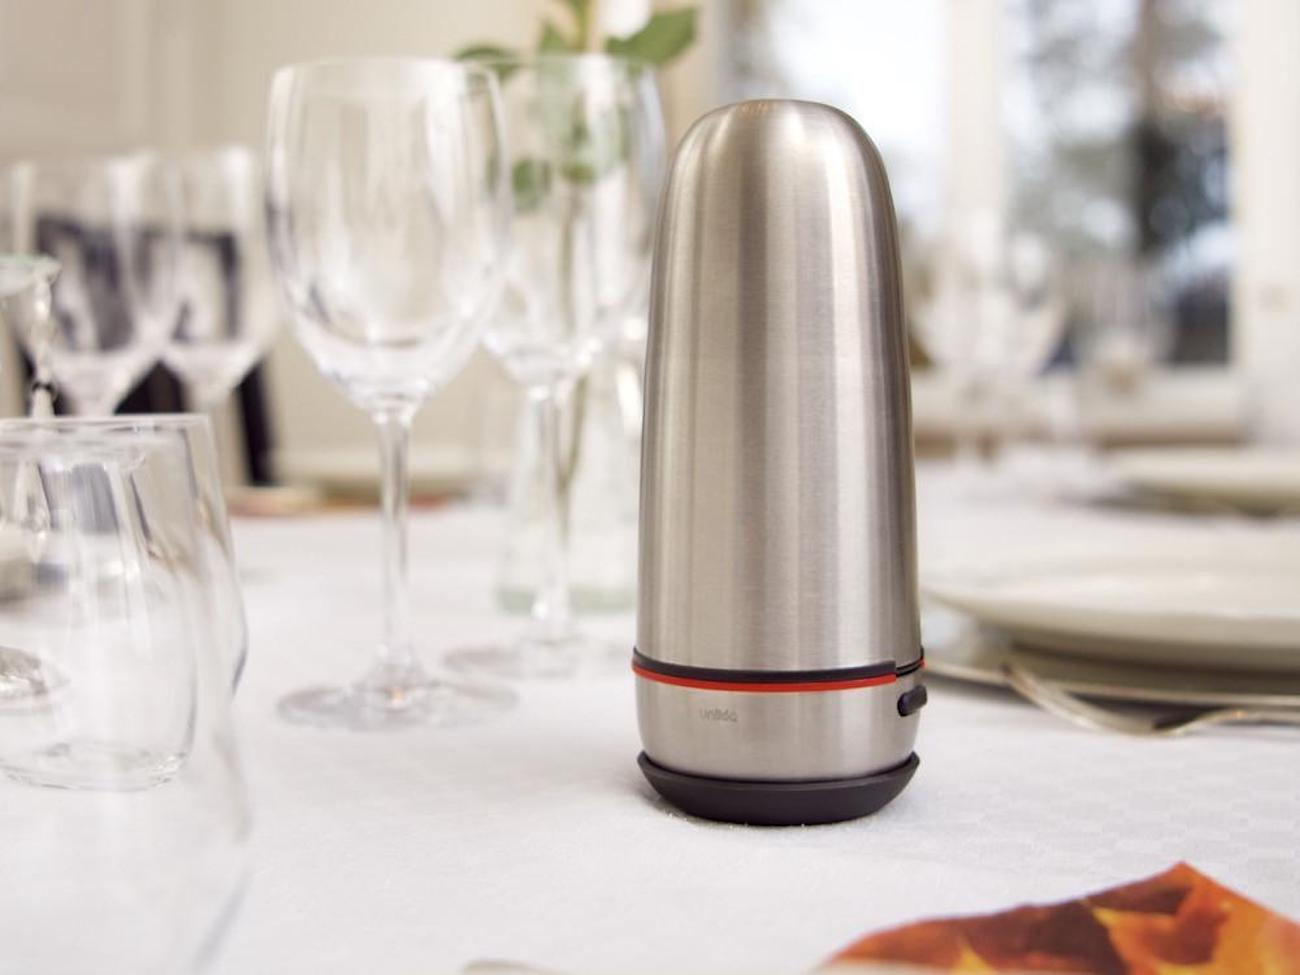 Unikia Stainless Steel Classy Ketchup Dispenser